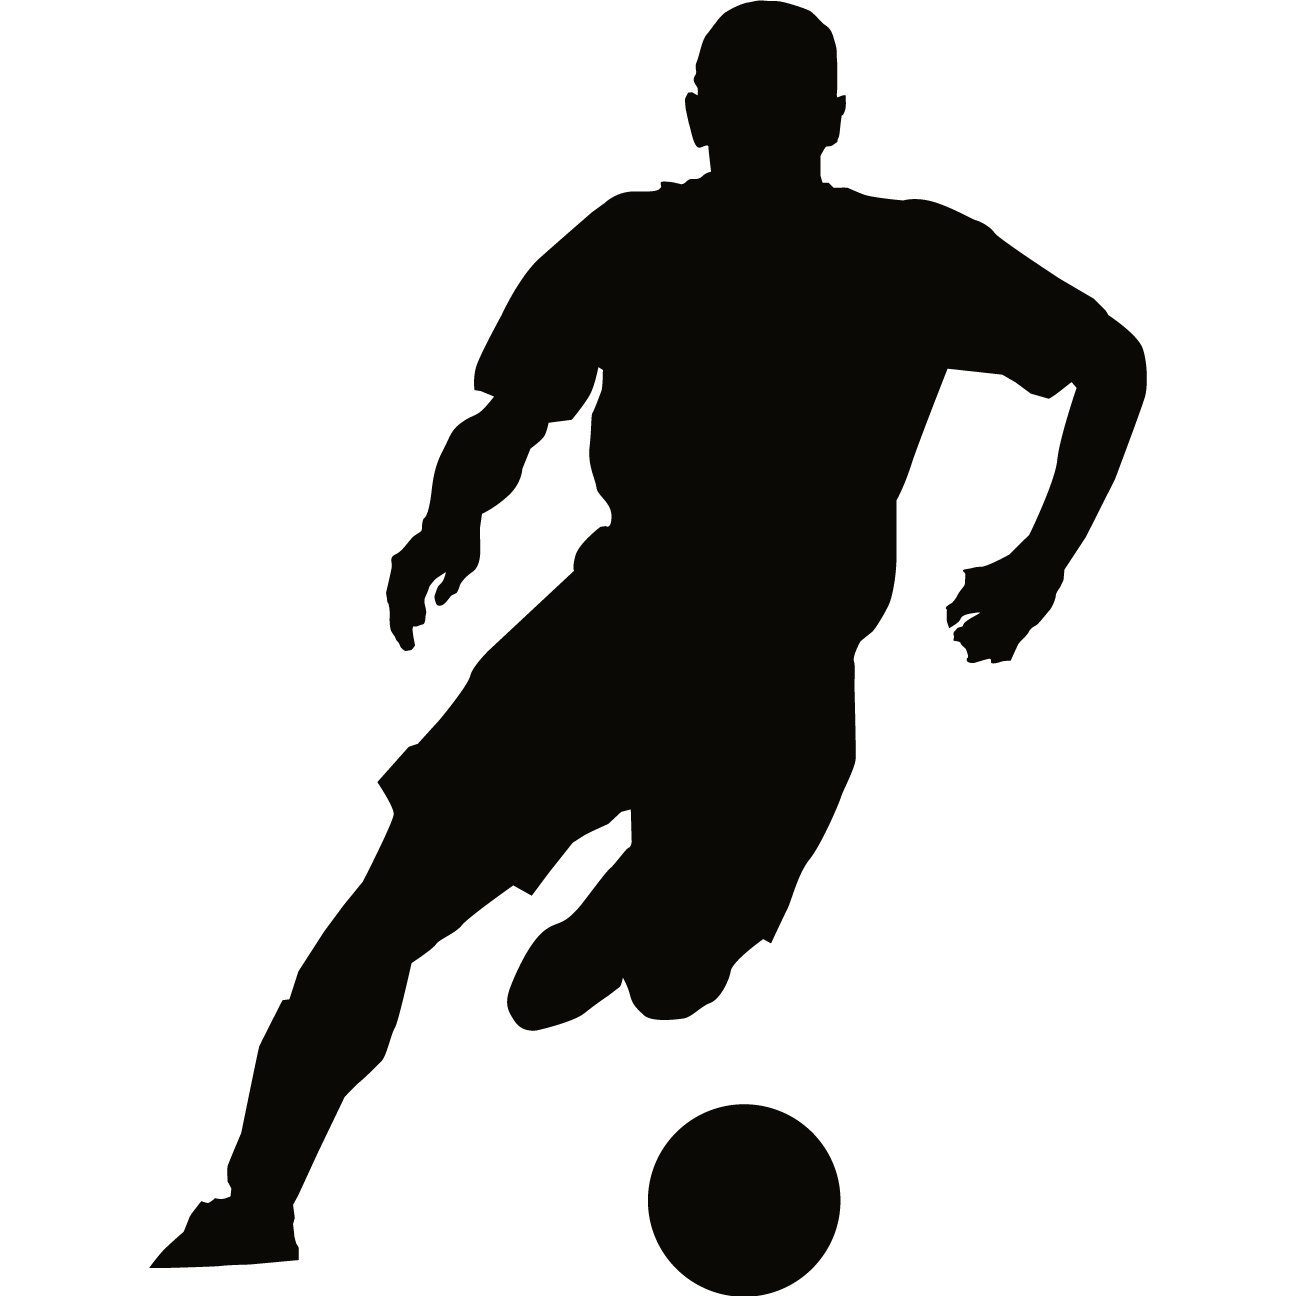 soccer player silhouette soccer silhouette clipart best player silhouette soccer